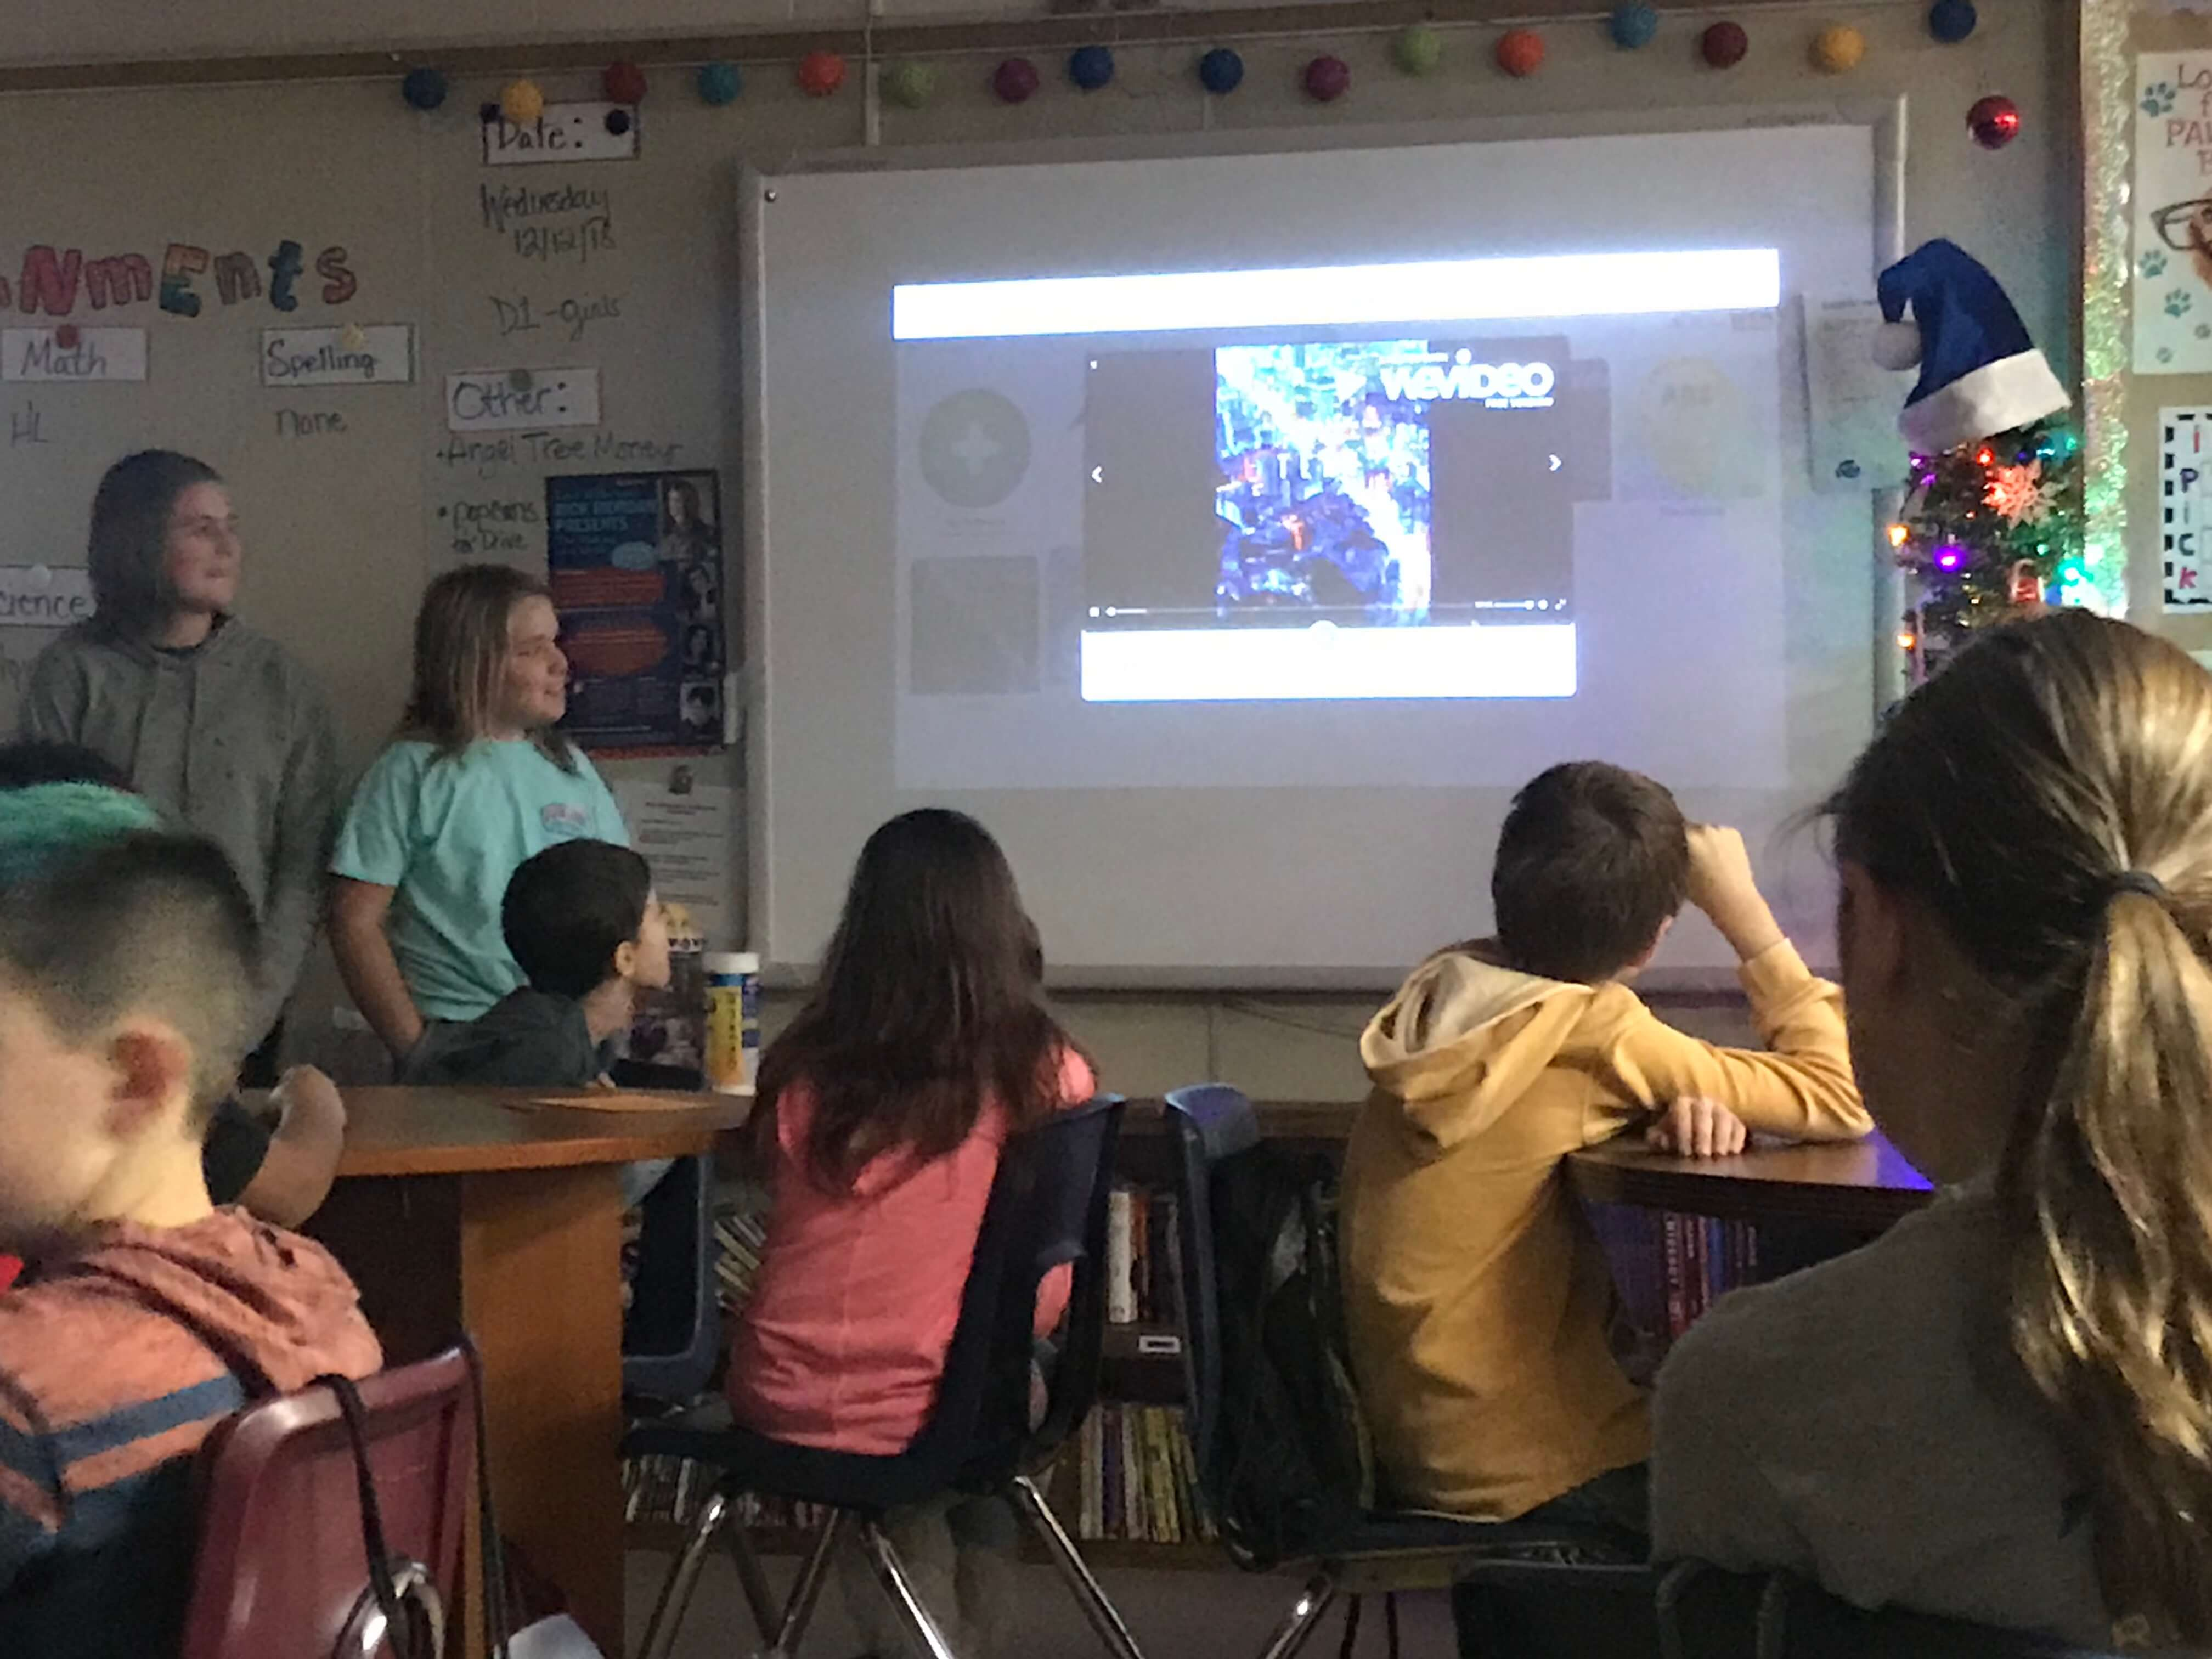 students in a classroom looking at projector presentation